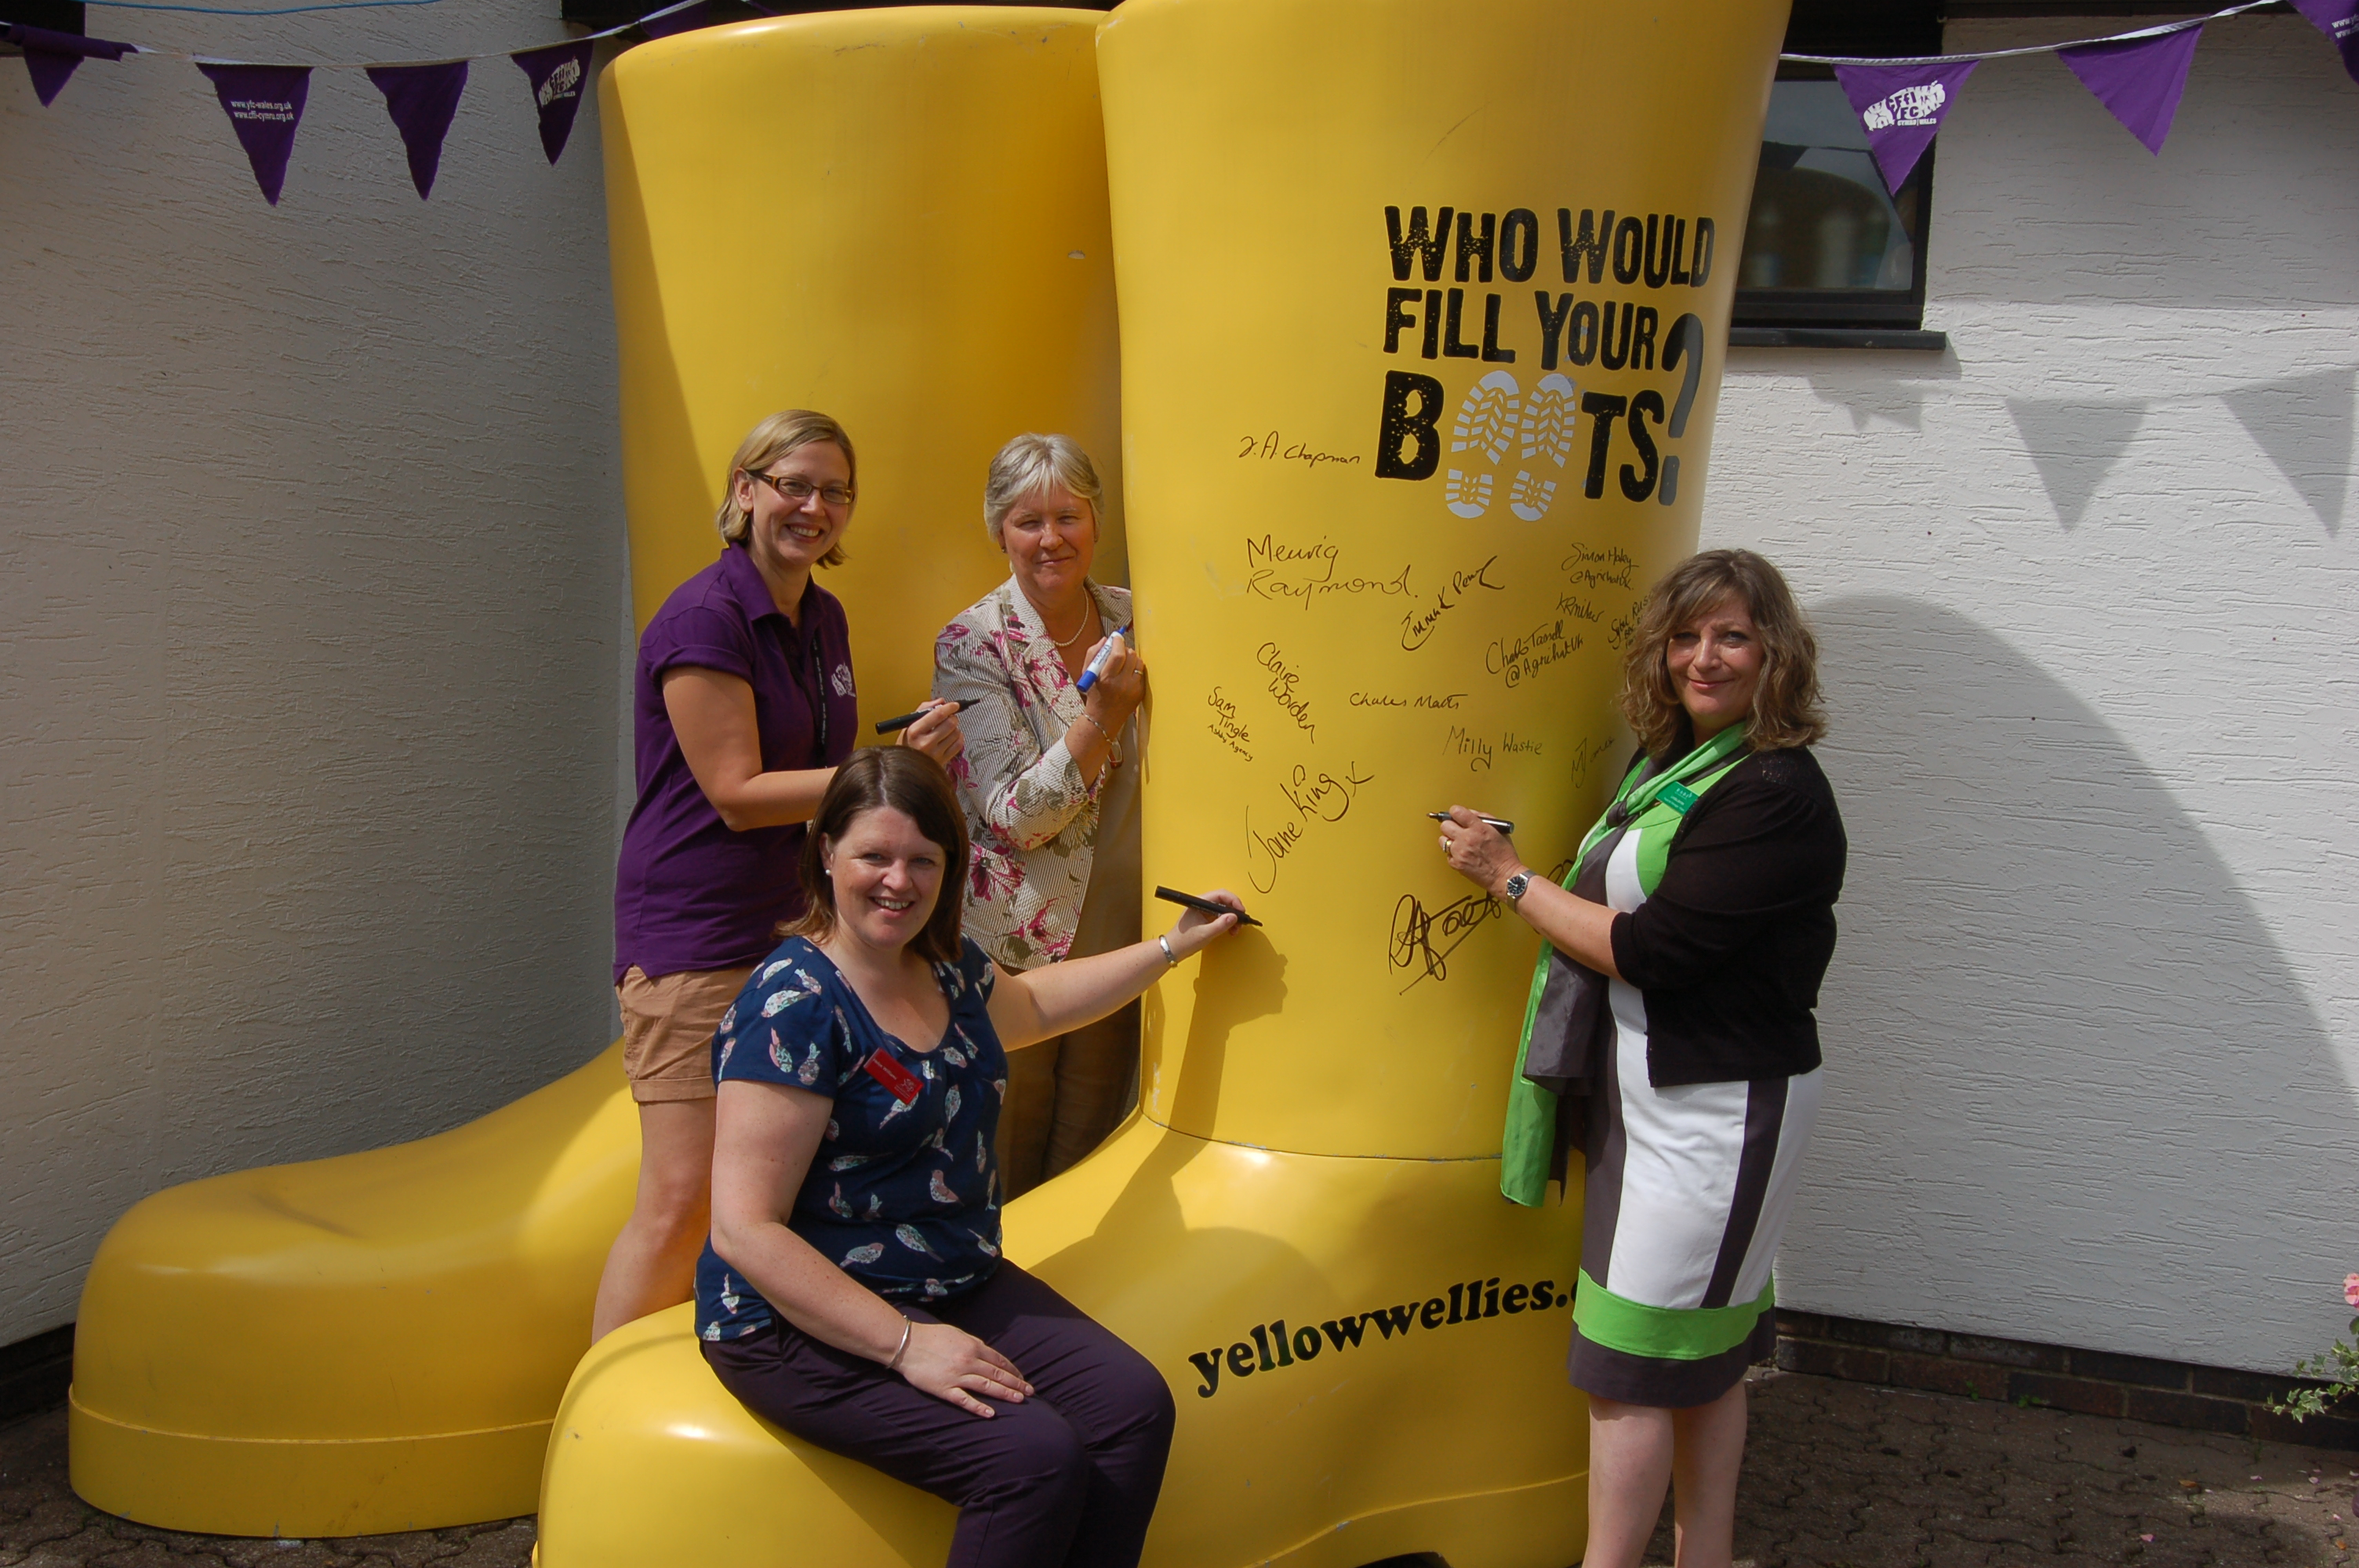 Royal Welsh welly signing 2014